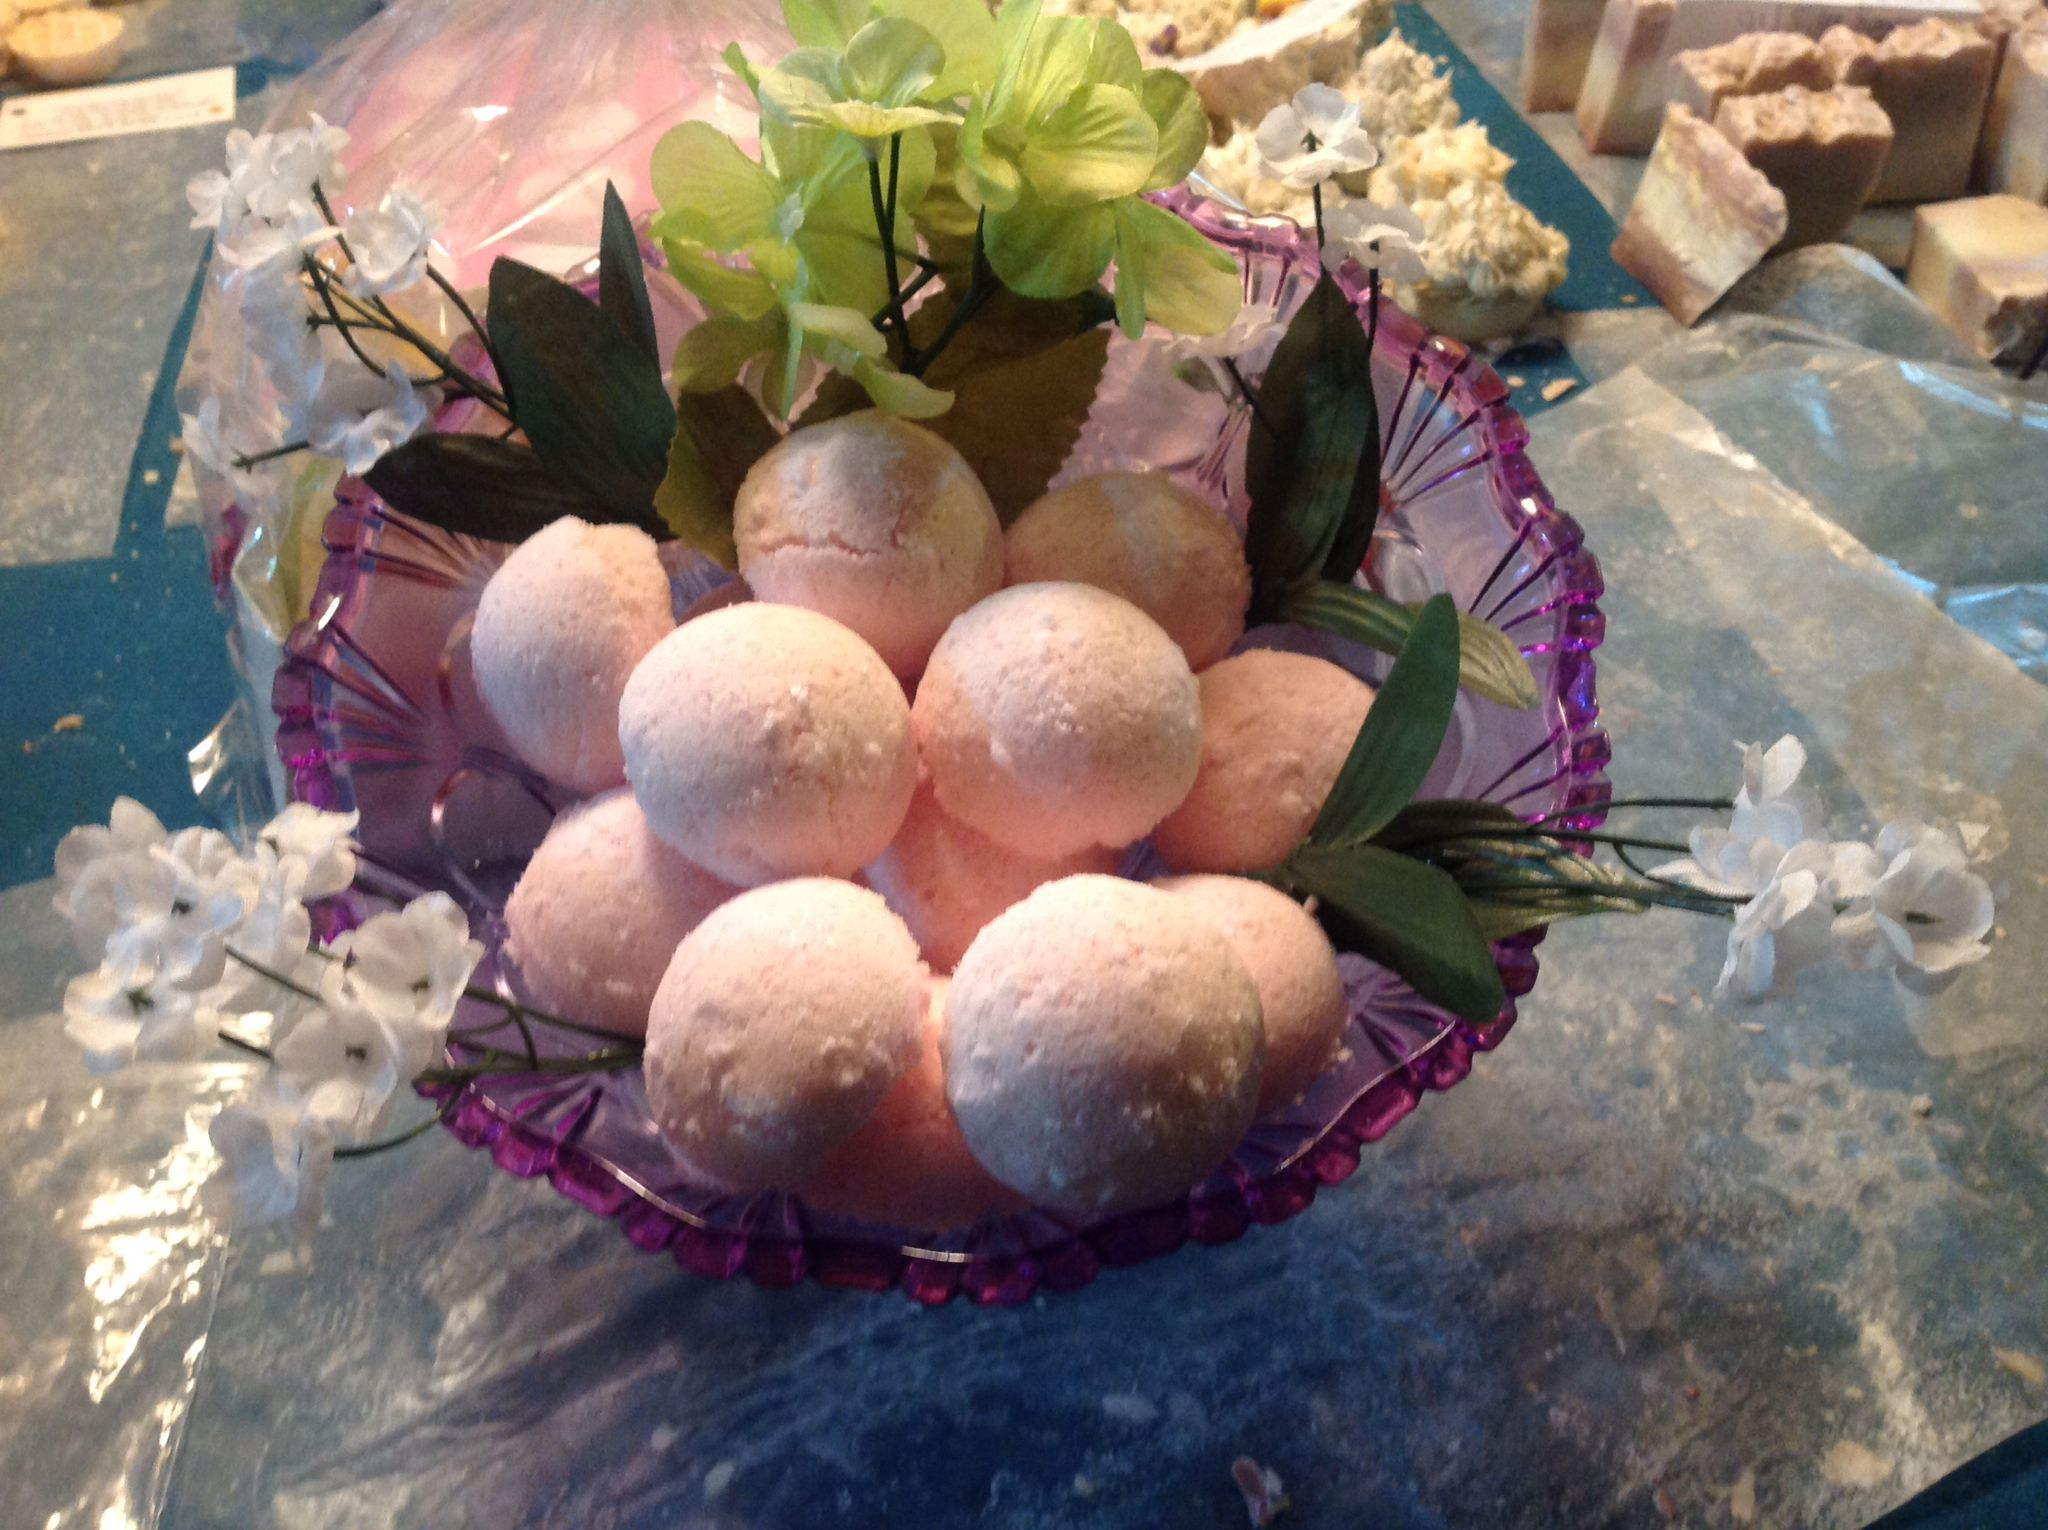 My pinkalishes bath bombs.   See my Facebook page Evy's Home Made Goodies